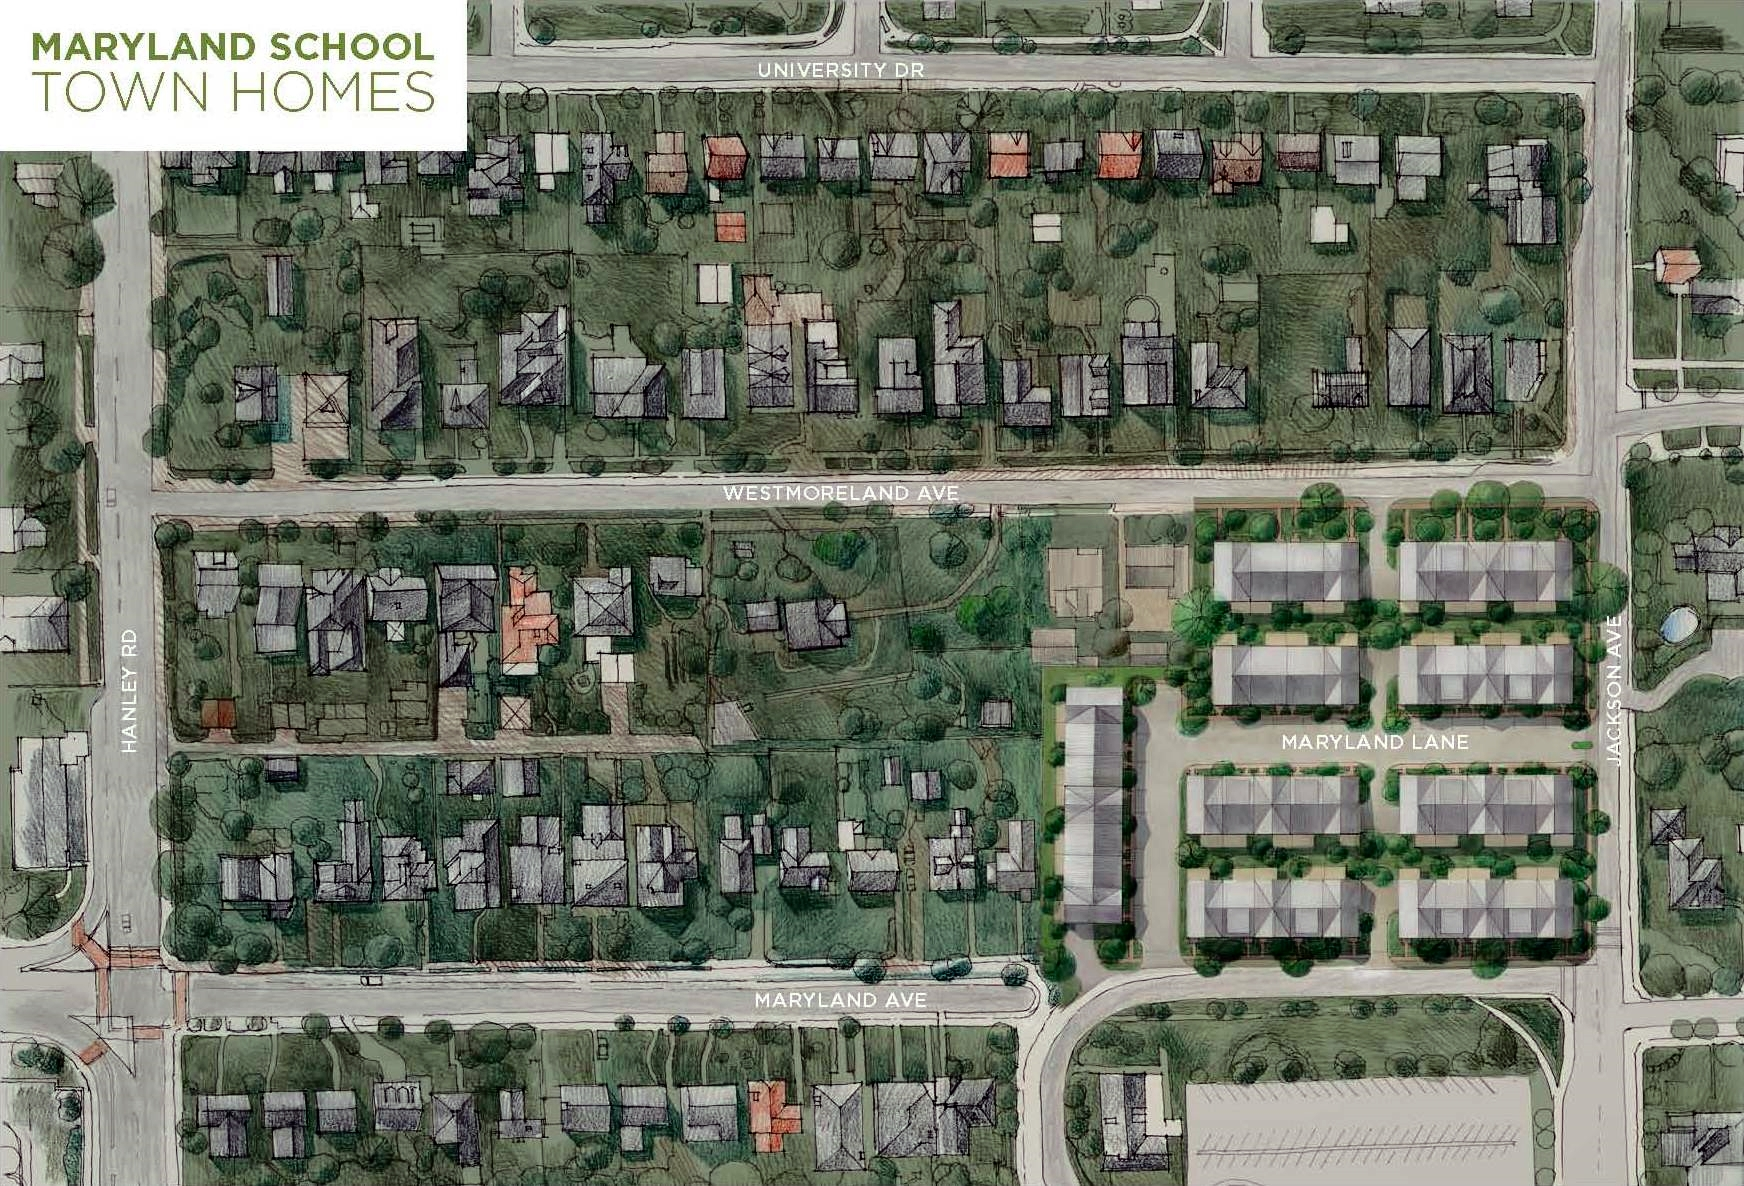 Maryland School Town Homes - Clayton, MO